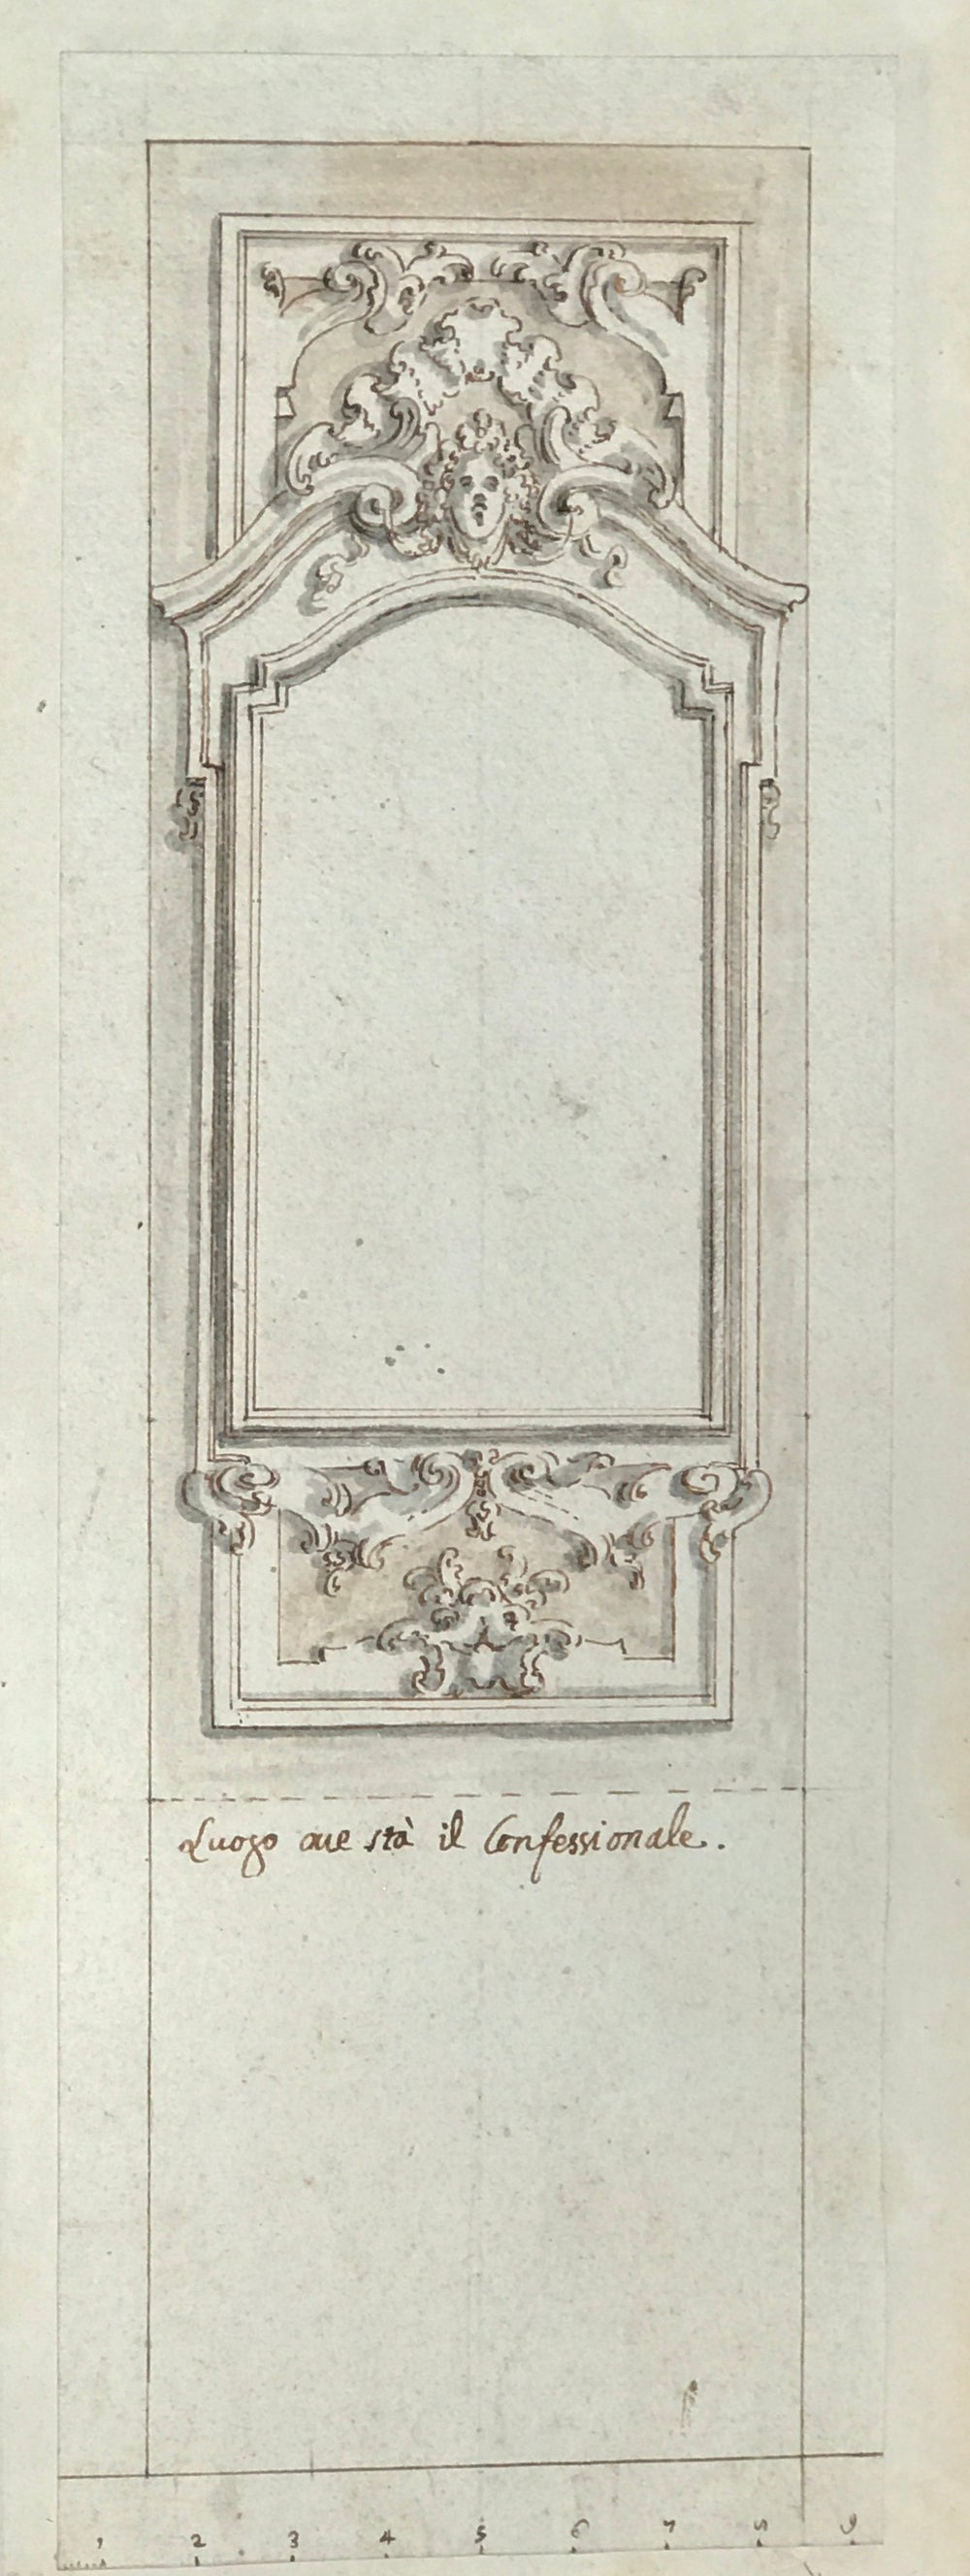 18th century project drawing for a confessional.